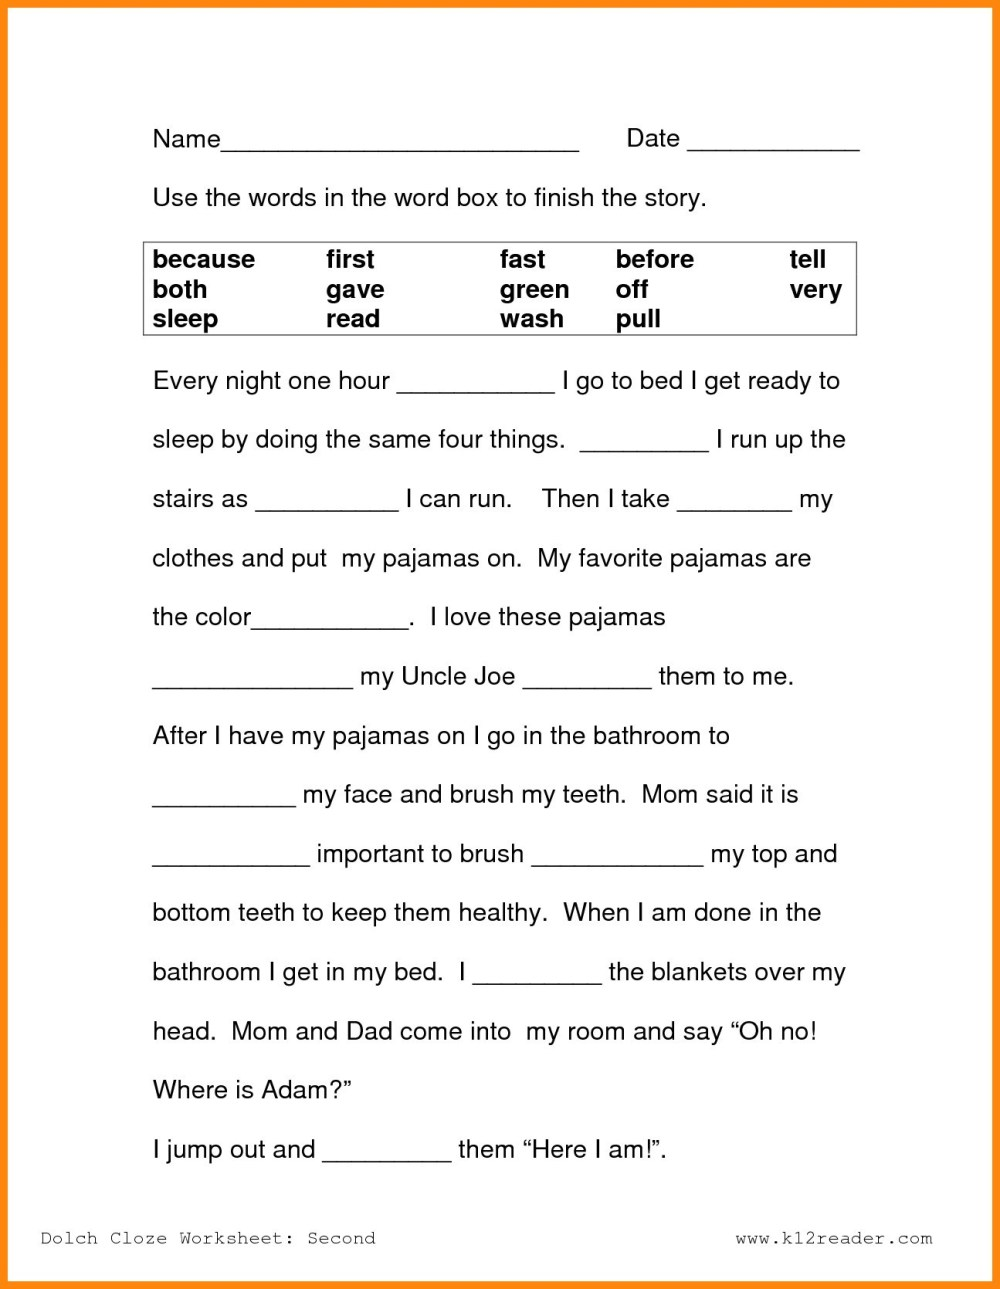 medium resolution of Dialogue Worksheet For 4th Grade   Printable Worksheets and Activities for  Teachers